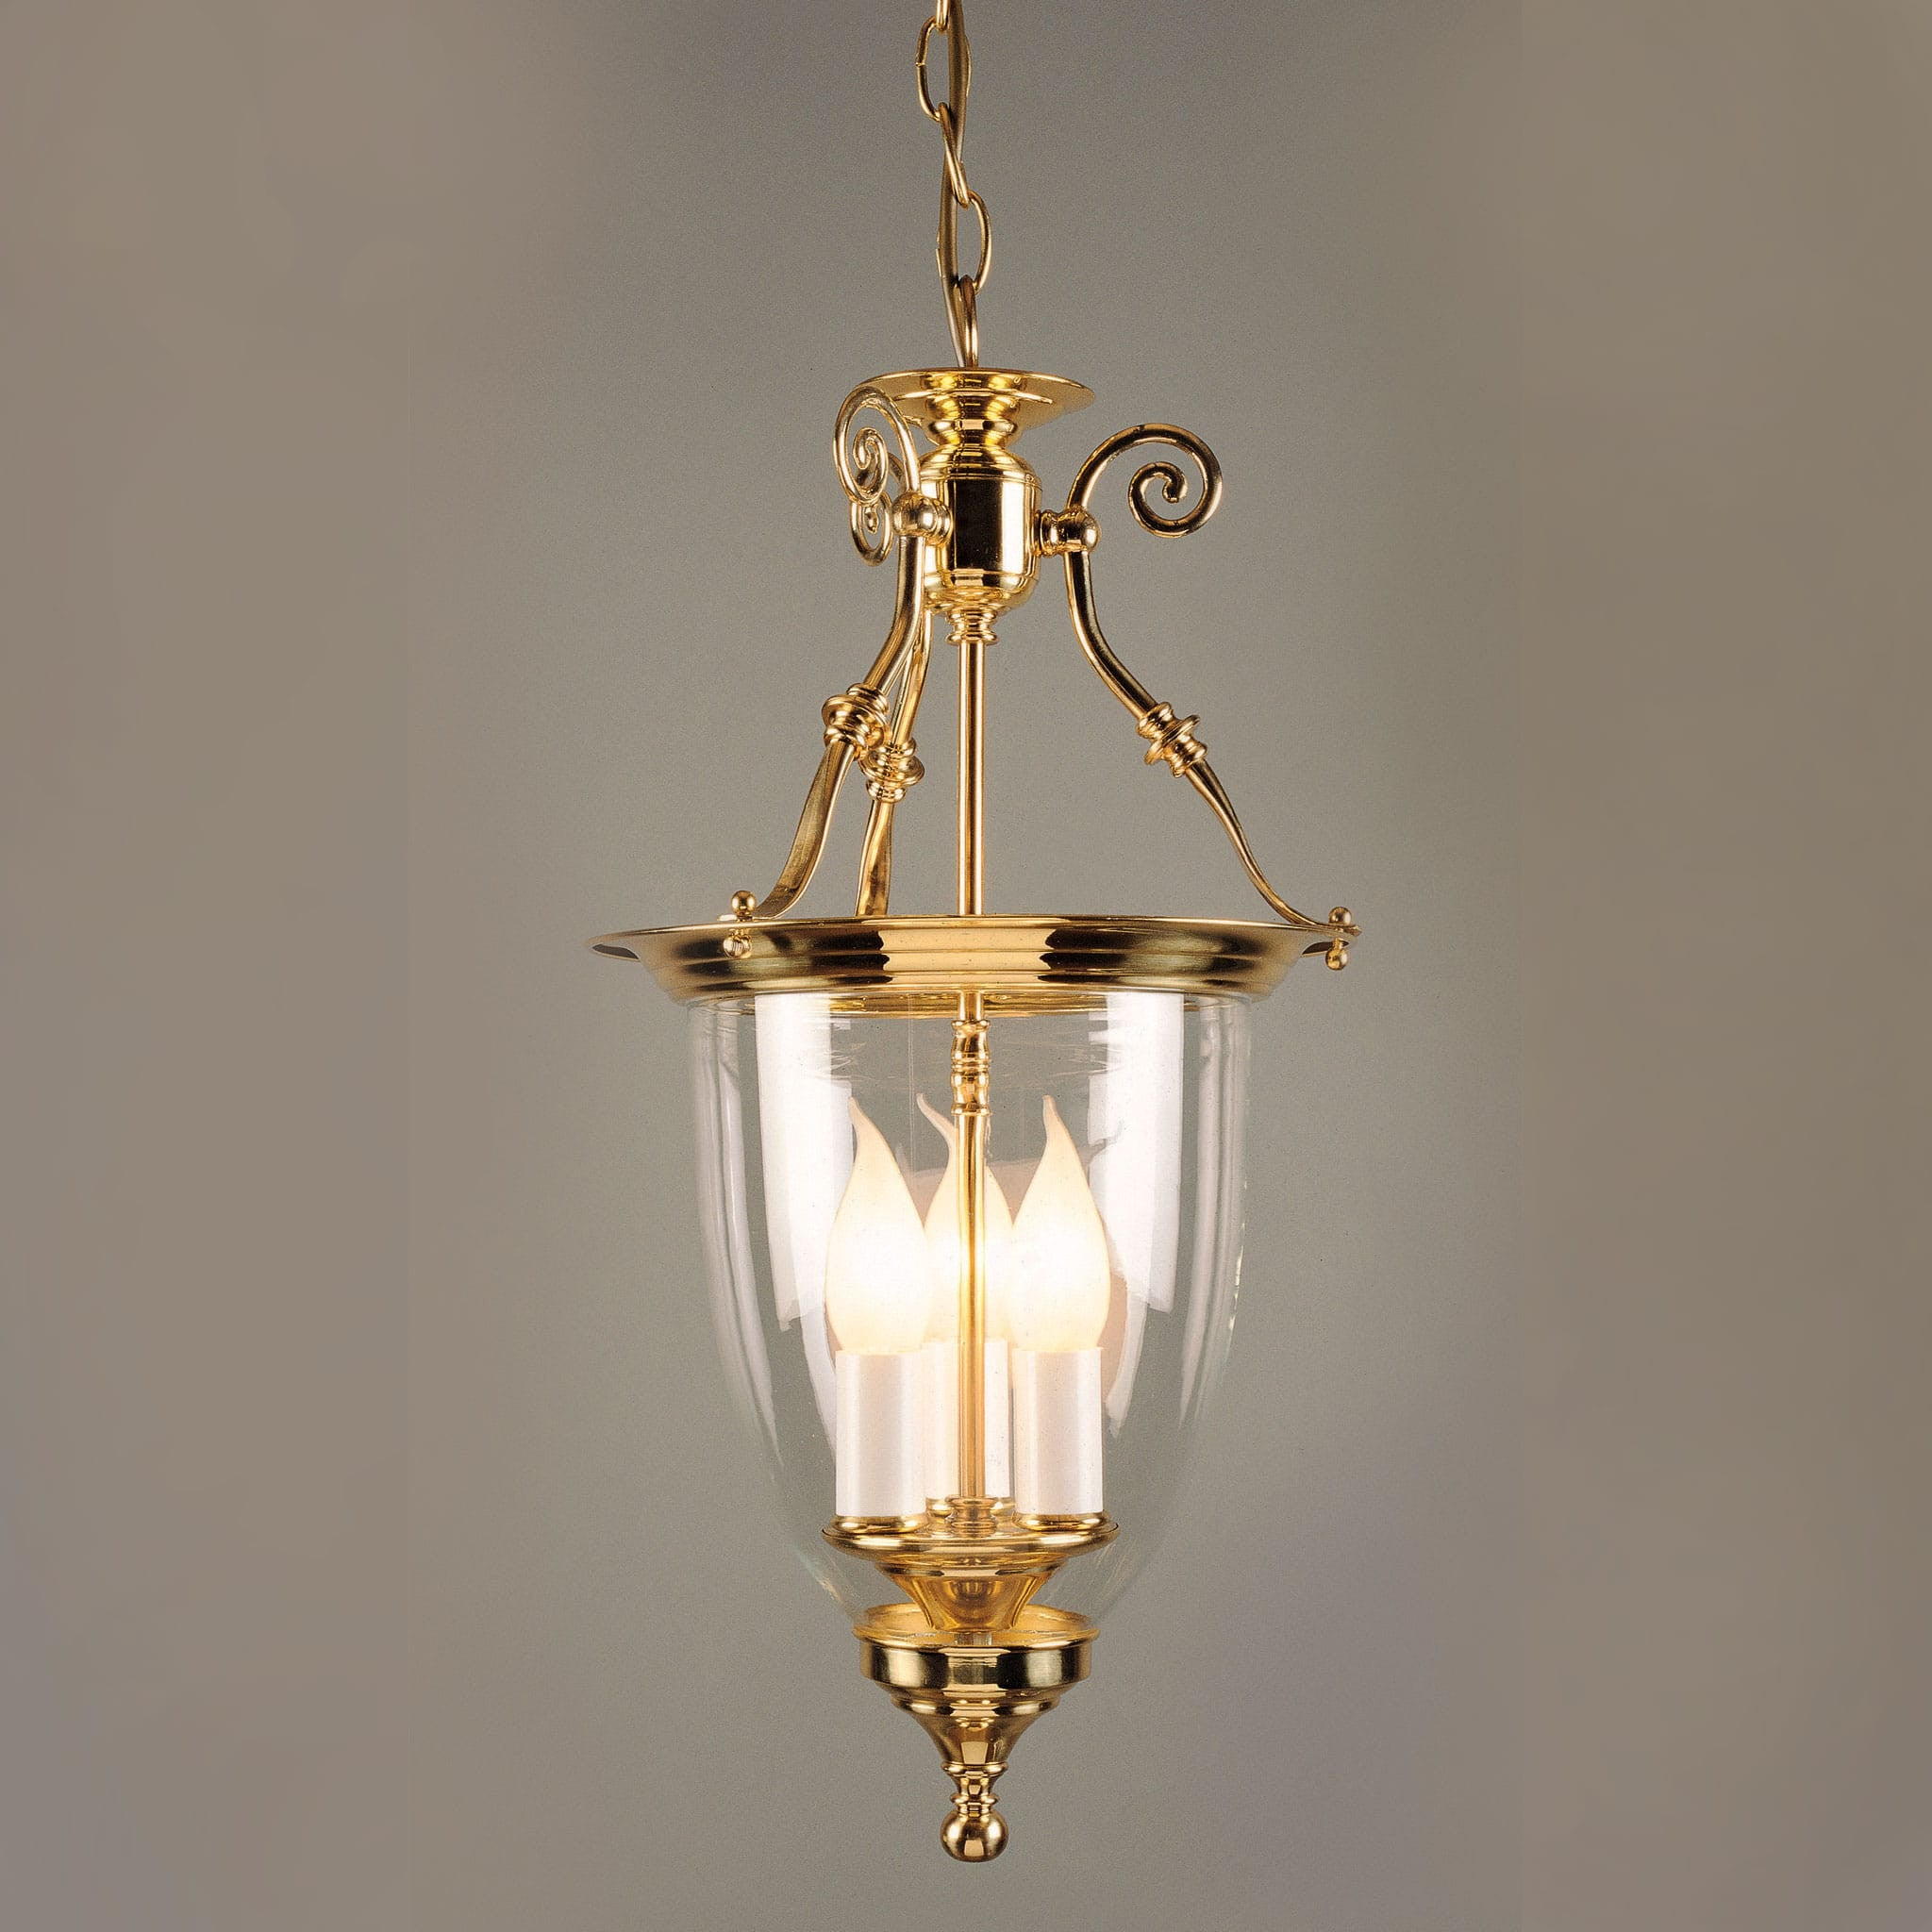 lamps washington shop mica vancouver spokane antiques art arts bremmer lighting store nouveau seattle crafts beautiful deco portland bogart fixtures chandelier vintage bradley victorian porch lantern antique iron tudor online pendant best